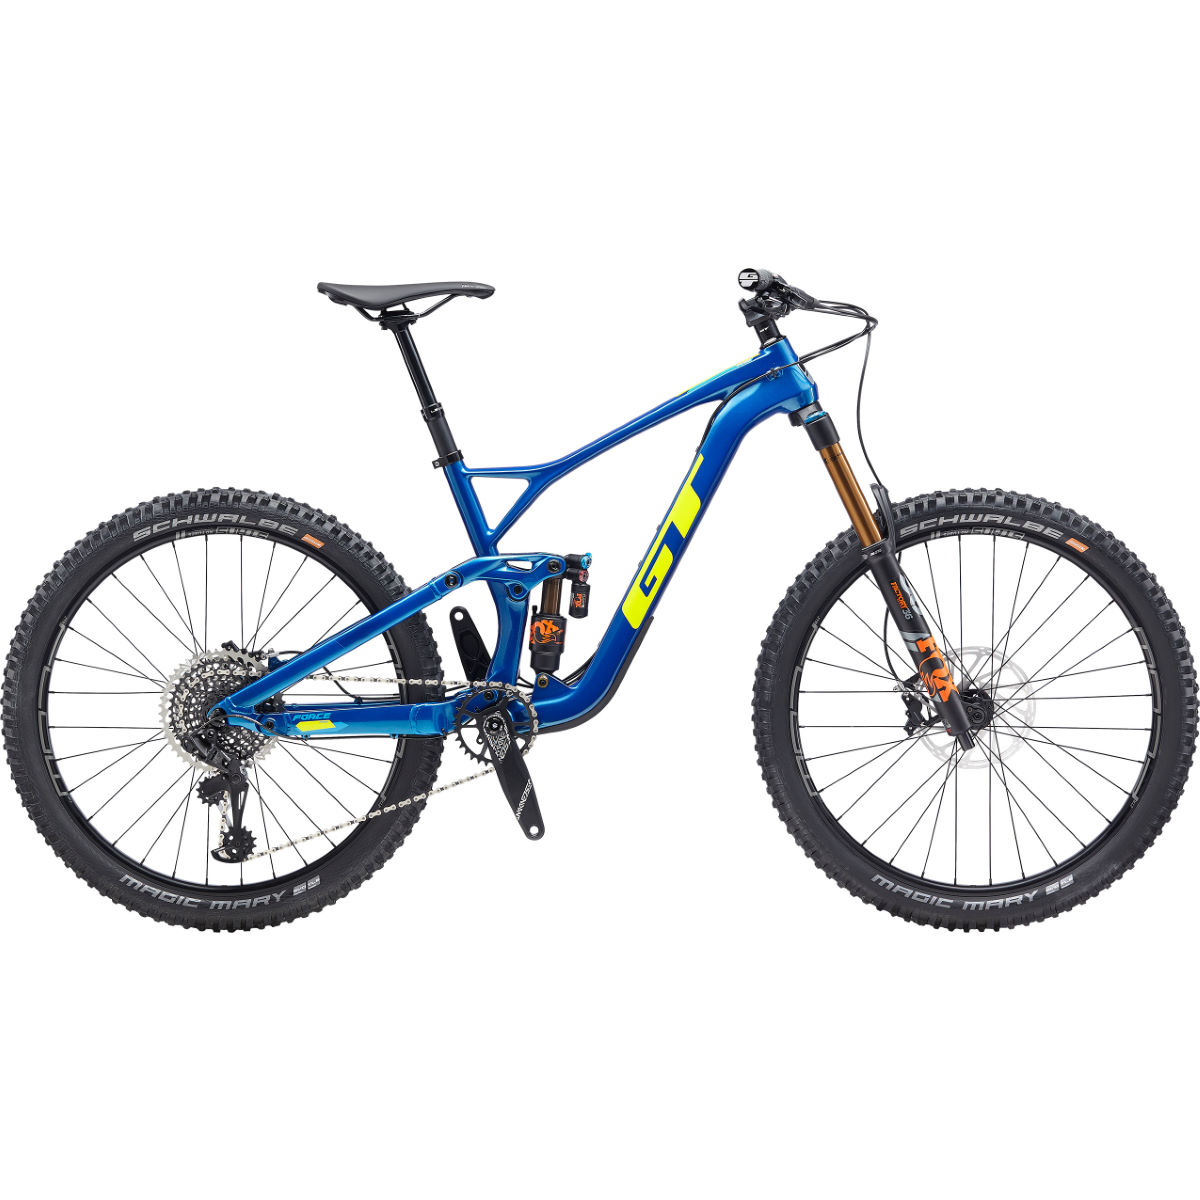 GT Force Carbon Pro 2020 Full